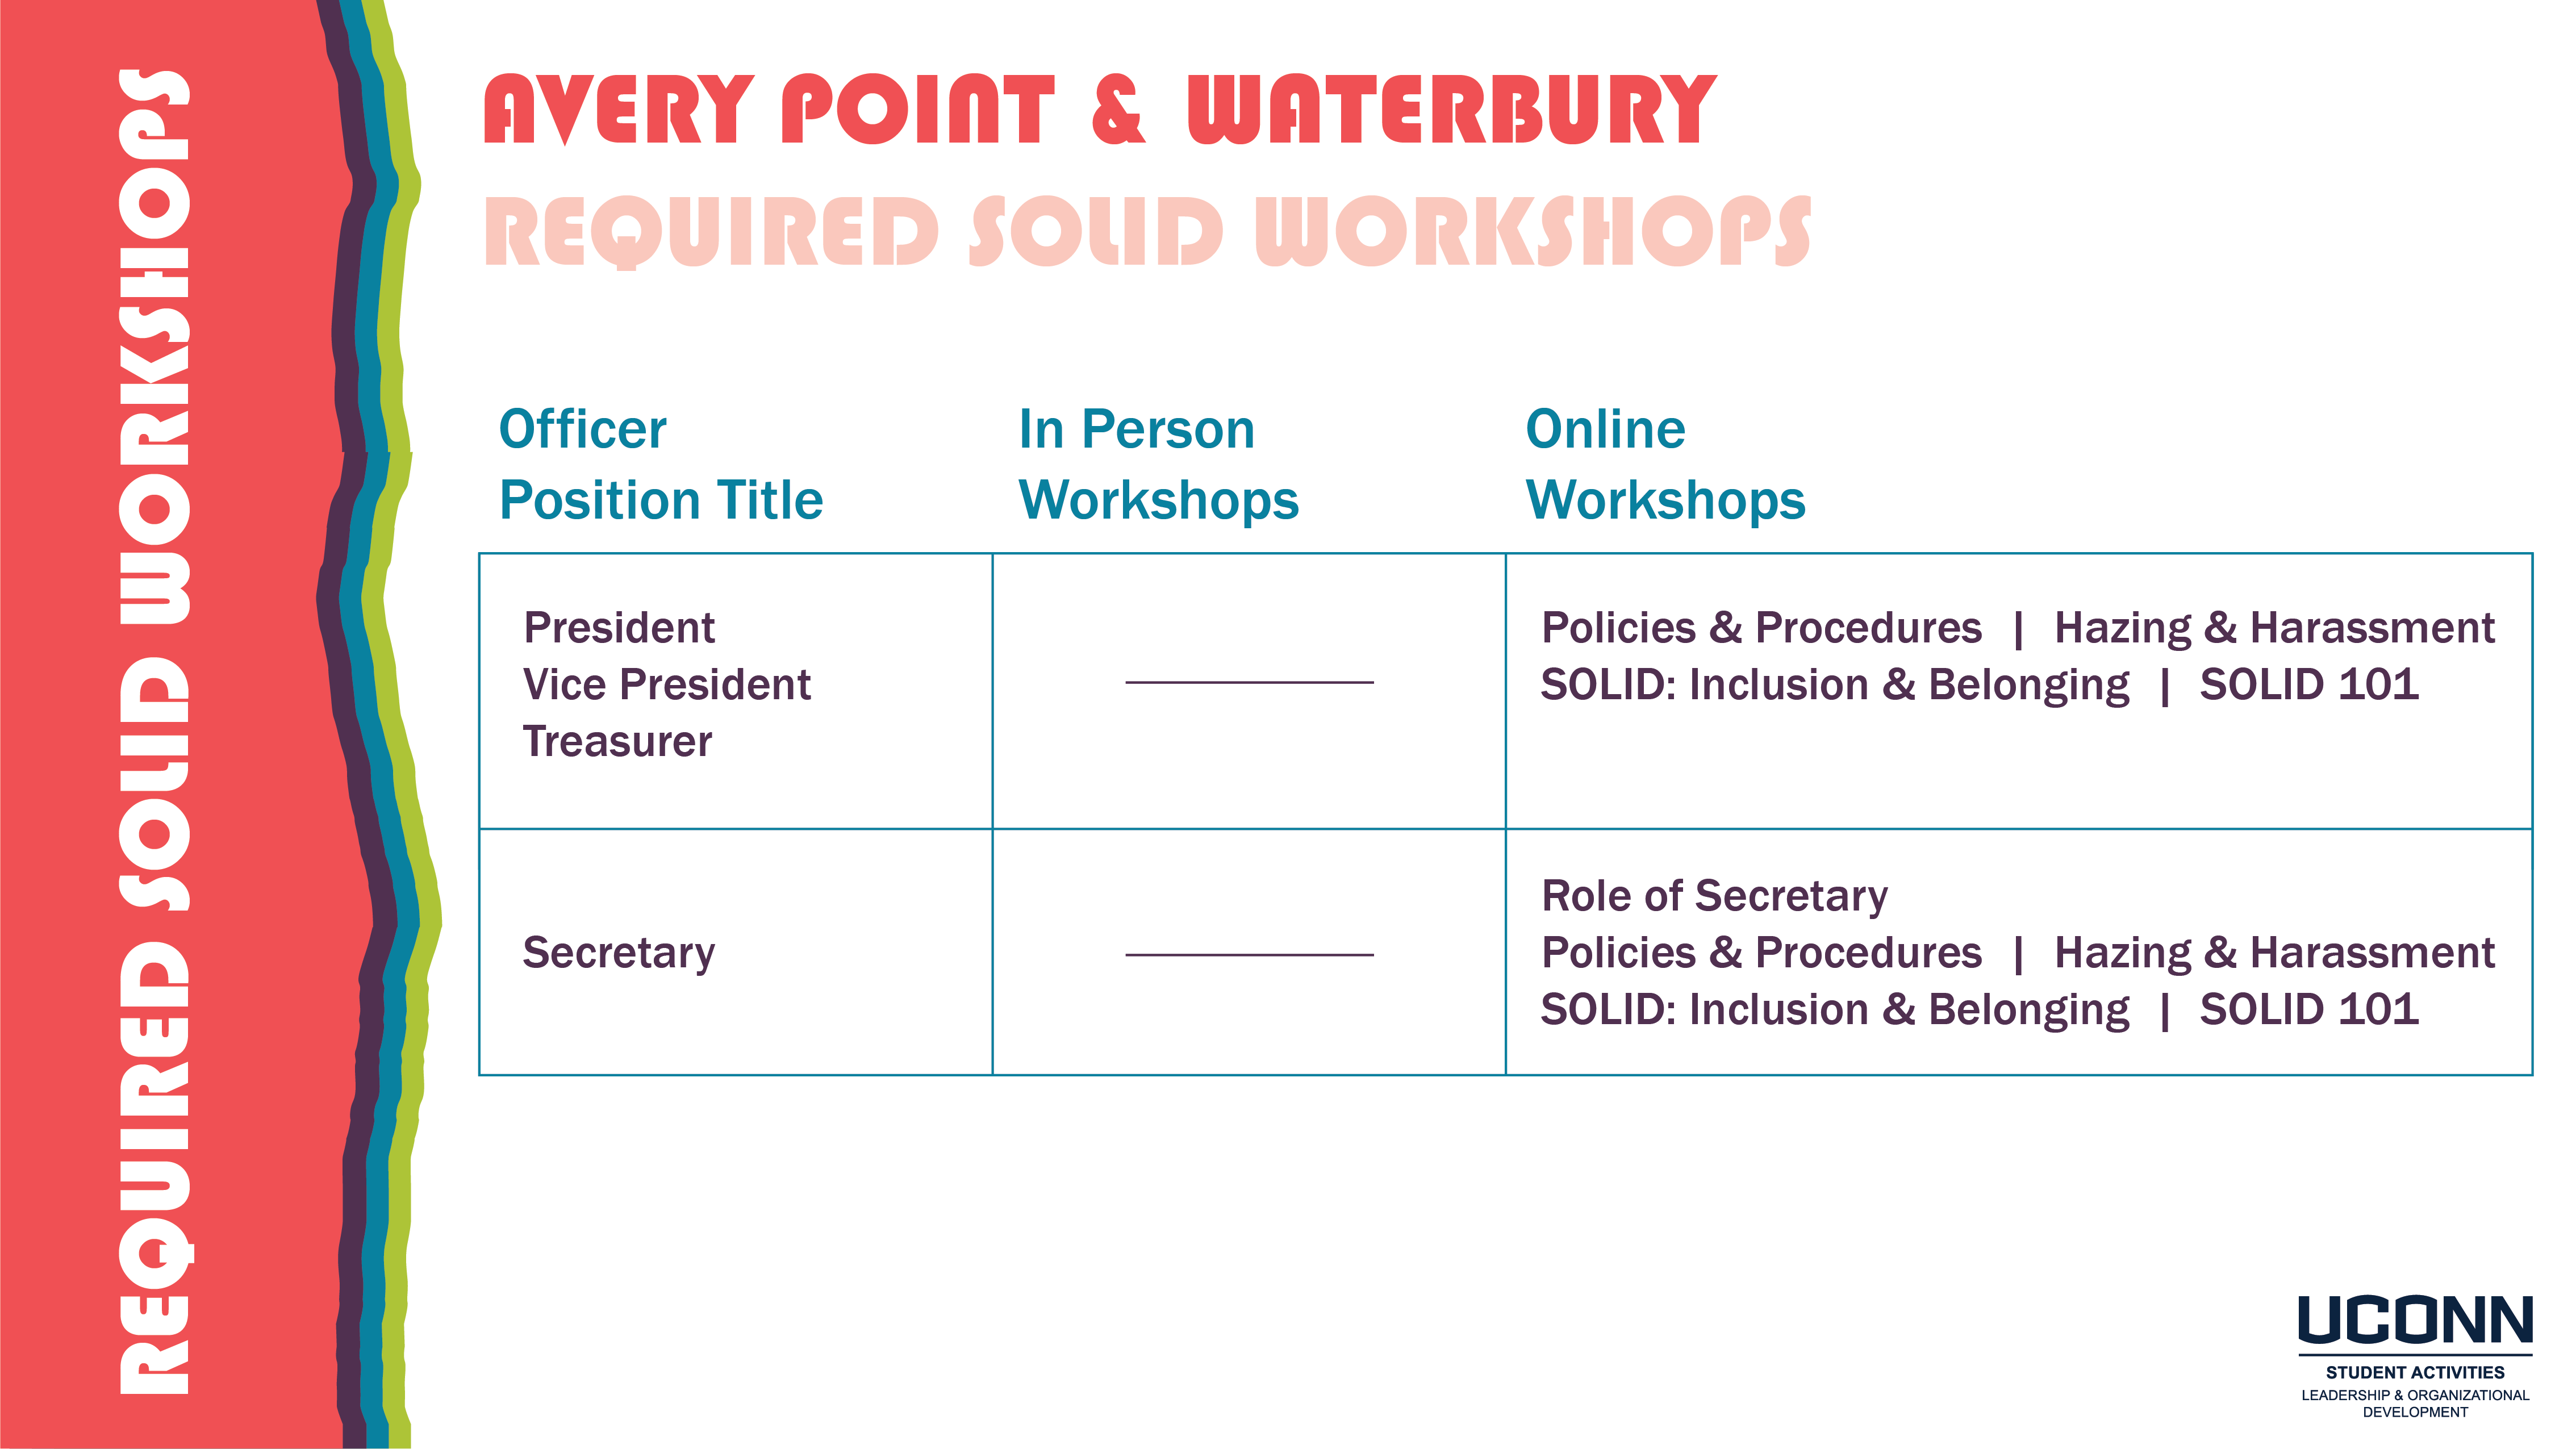 Avery Point & Waterbury SOLID Workshop Requirements Image (read below for text)